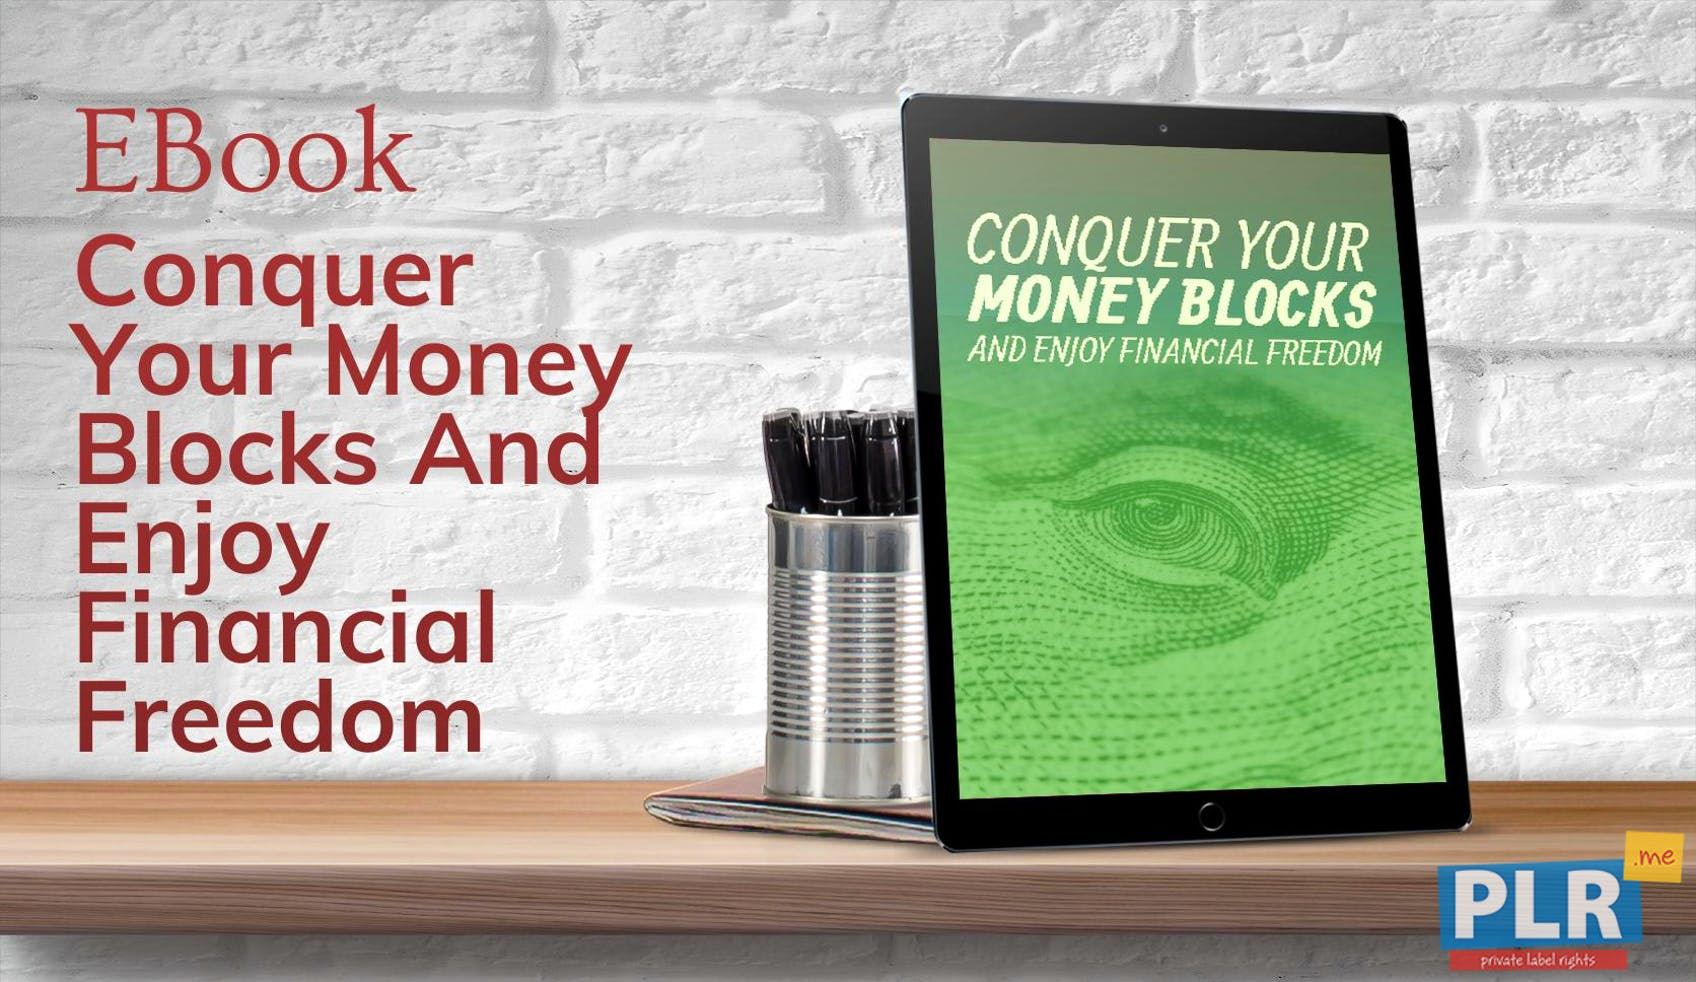 Conquer Your Money Blocks And Enjoy Financial Freedom